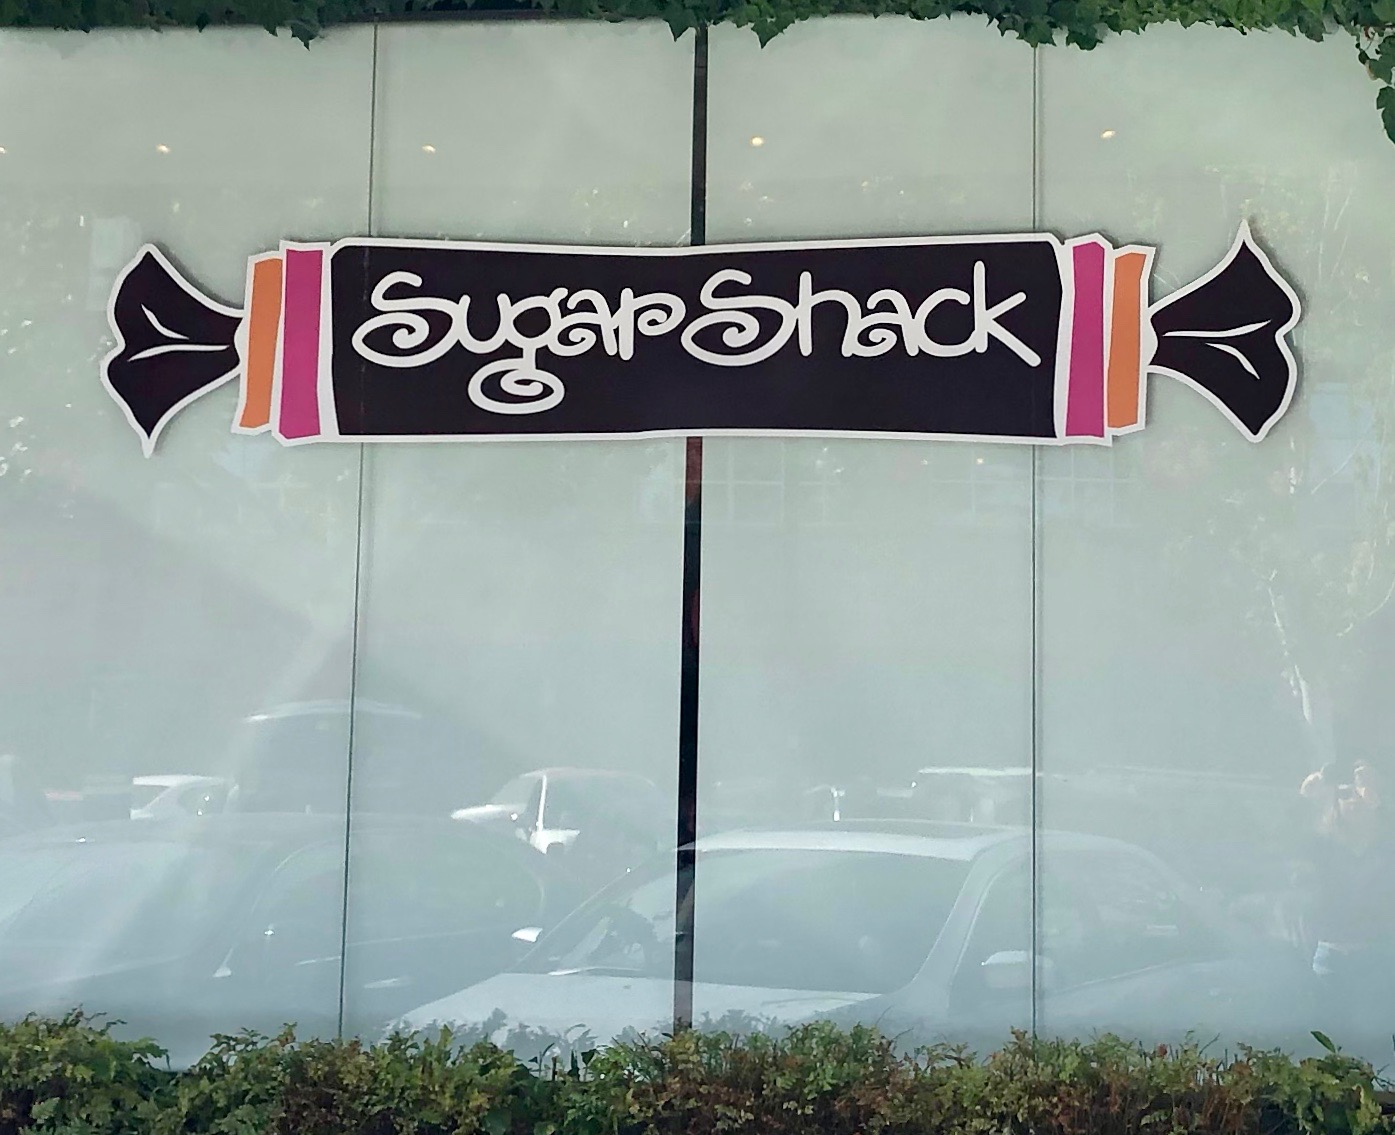 Sugar Shake is reopening in a new location across from the Draeger's Parking lot in Menlo Park. Staff Photo: Lucy Pike.